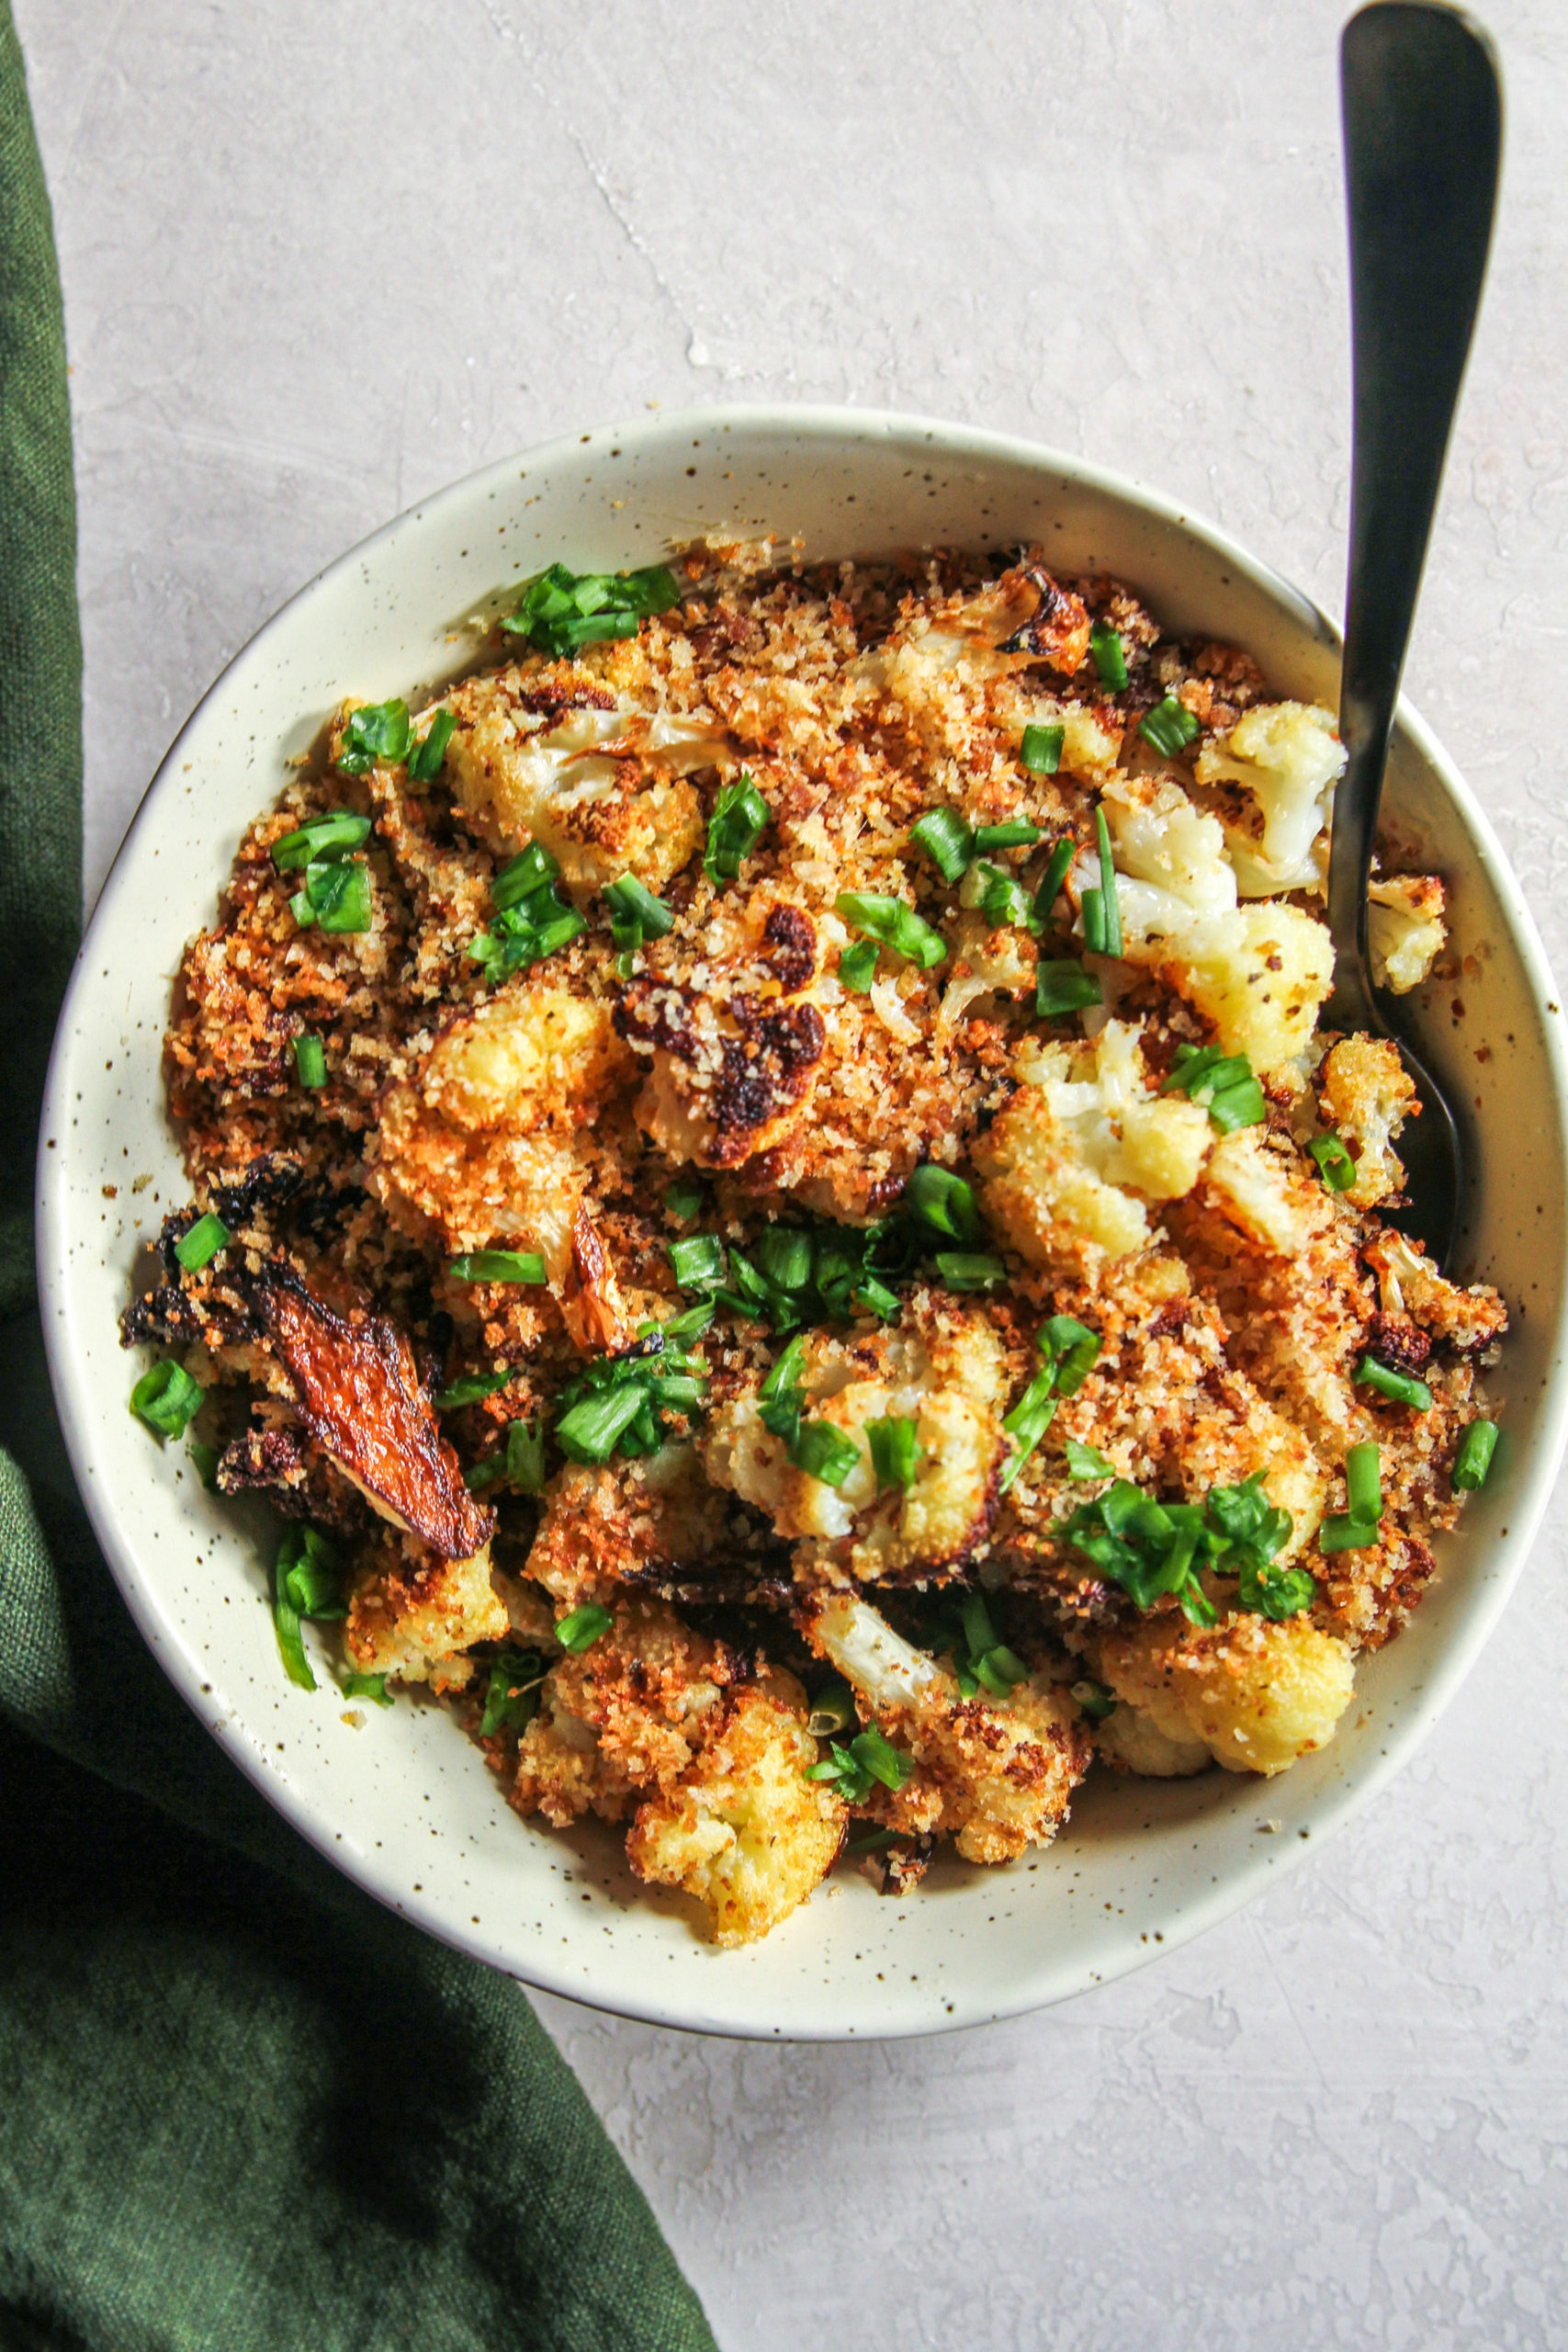 Bowl of food with anchovy breadcrumbs